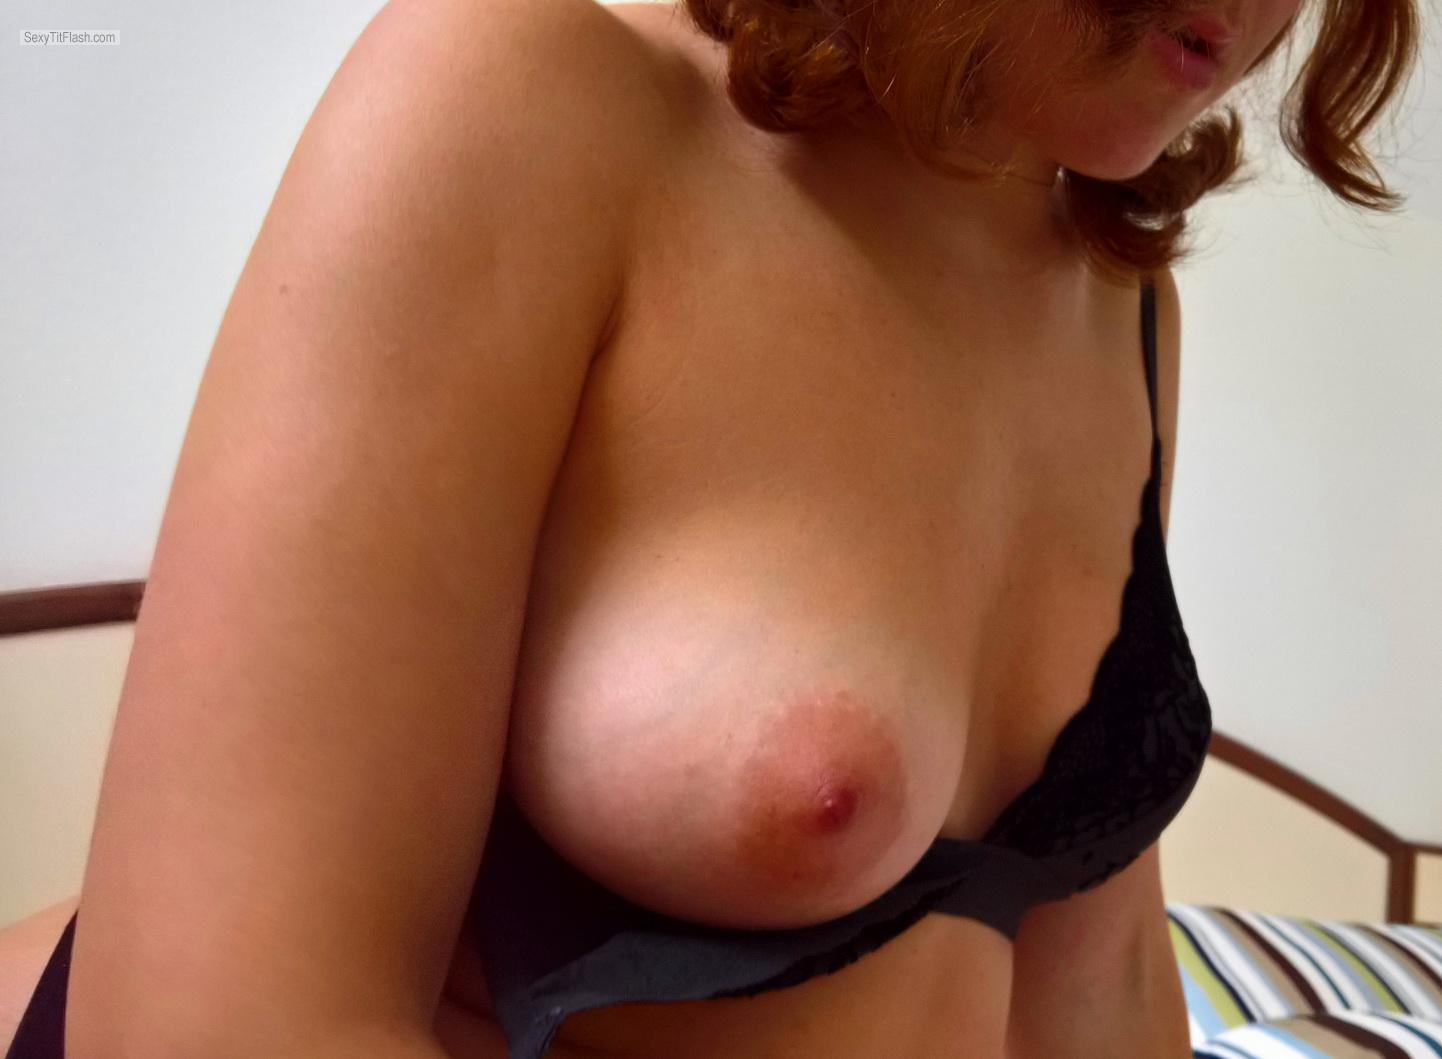 Tit Flash: Wife's Small Tits - Eliza from France